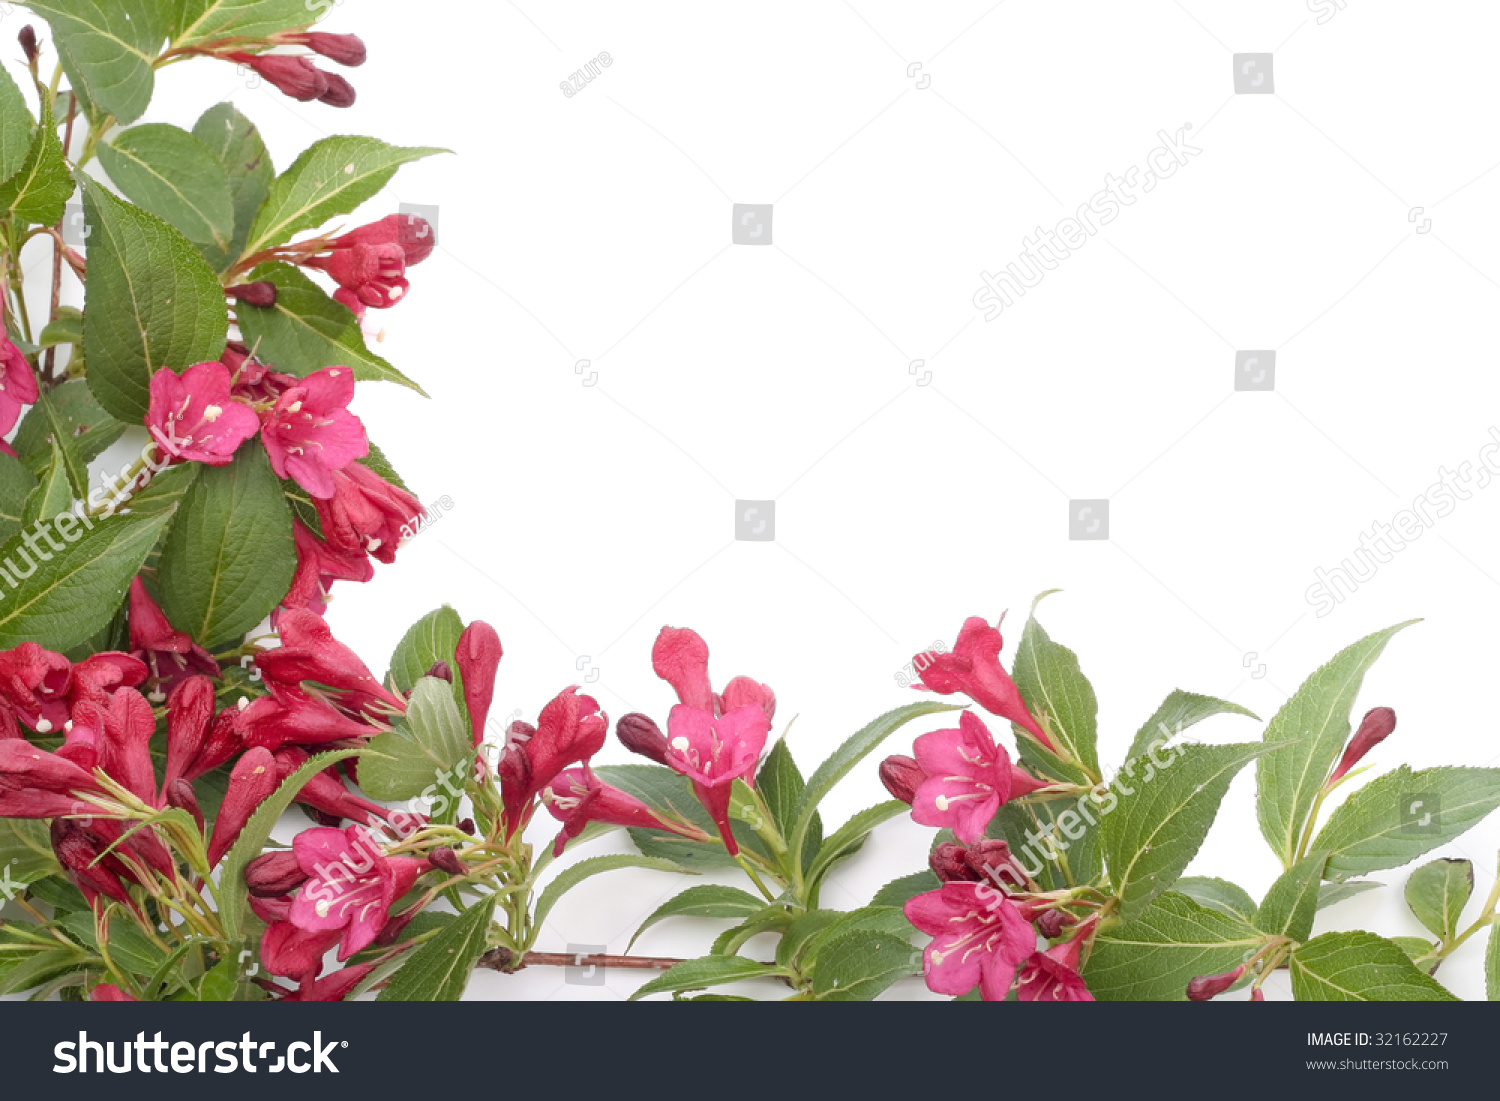 Red Bell Shaped Flowers Over White Background Ez Canvas